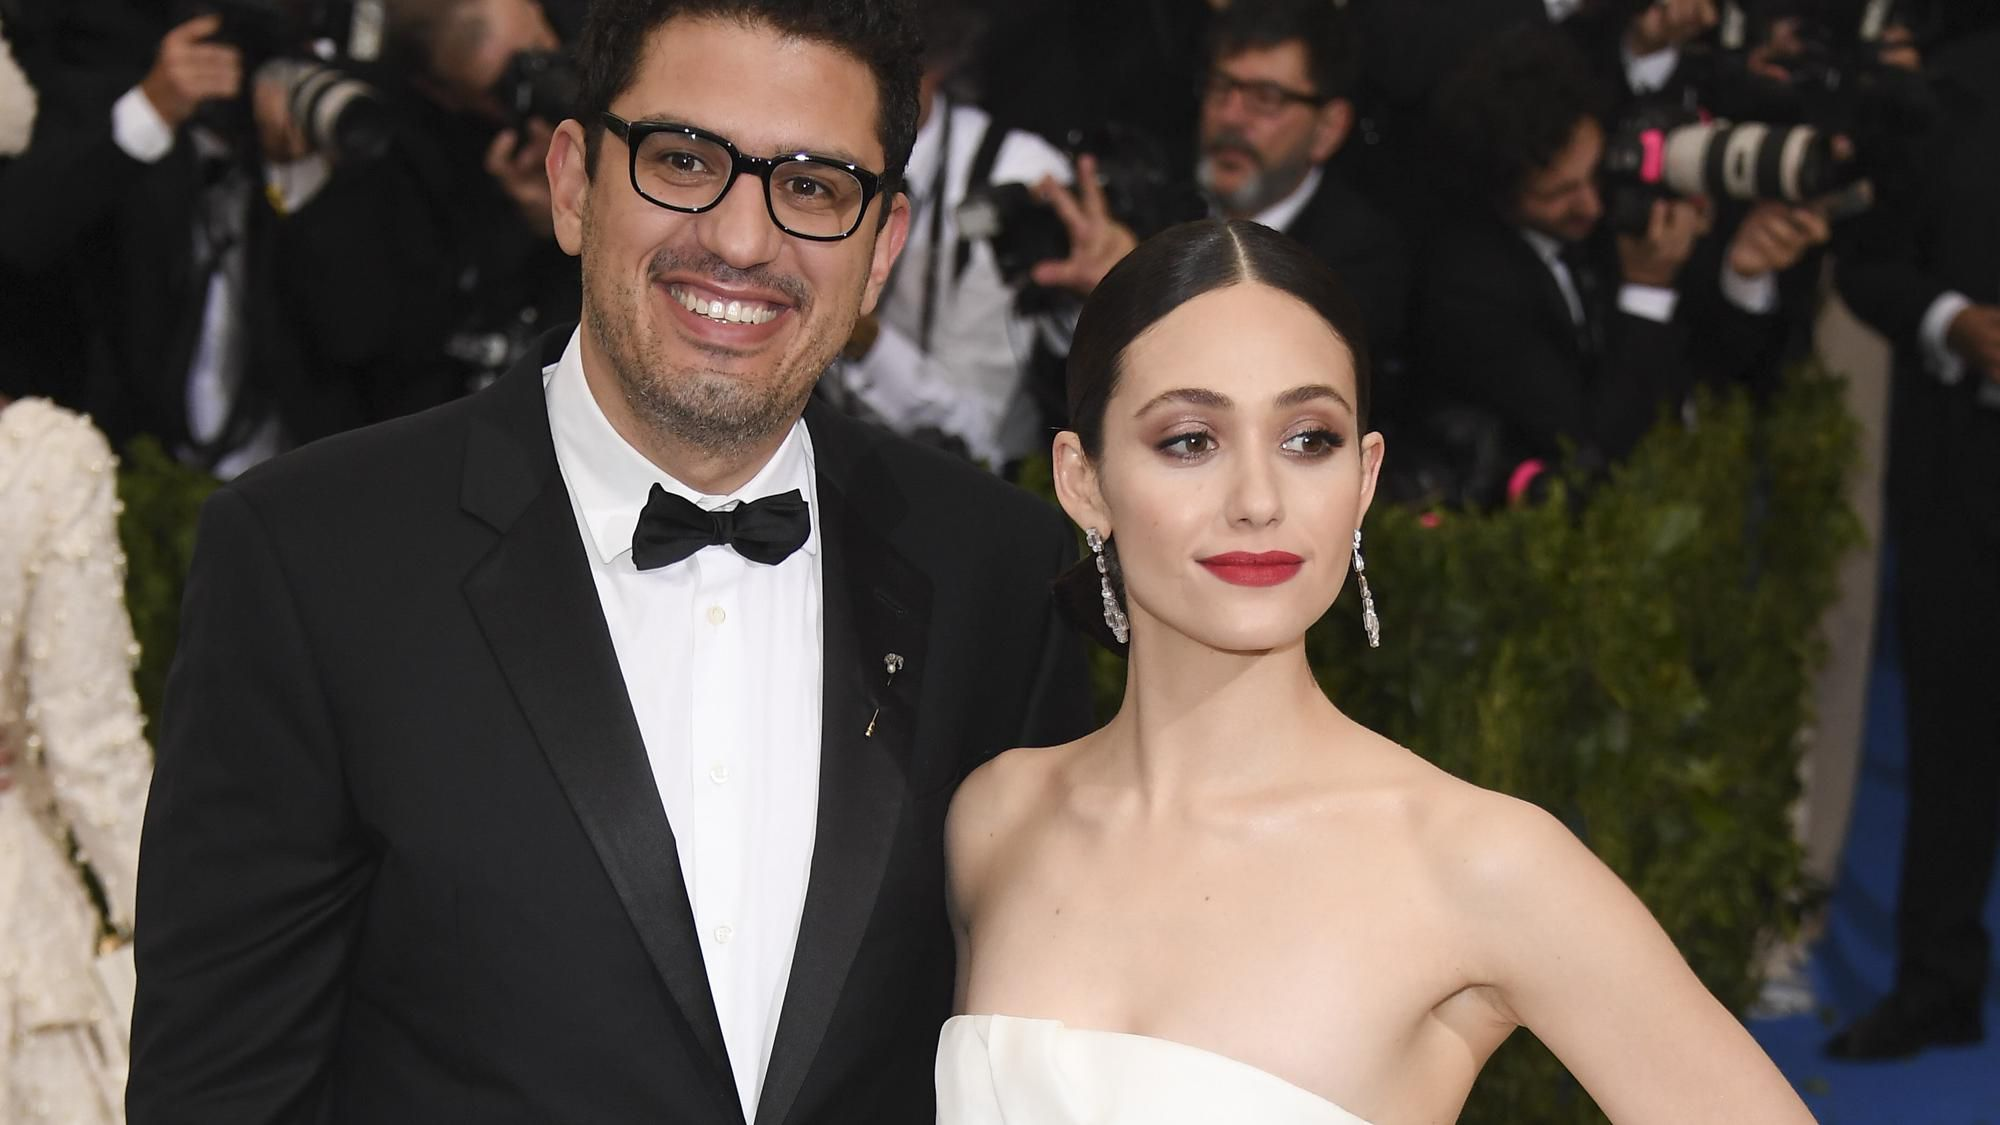 Who is Emmy Rossum dating?